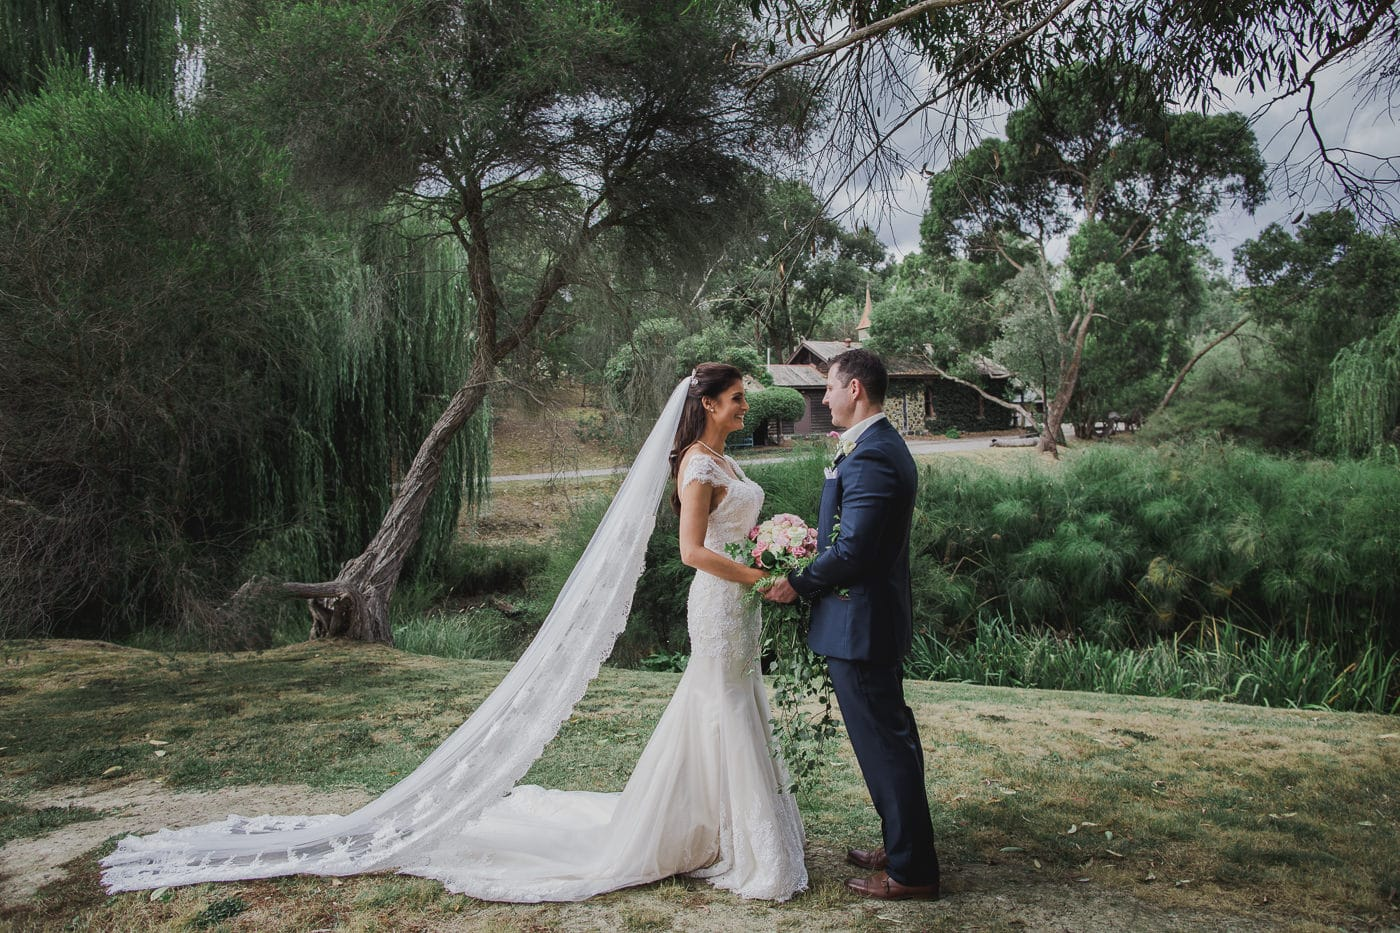 Best Wedding Photos in Melbourne - Bridal Couple in Melbourne Gardens